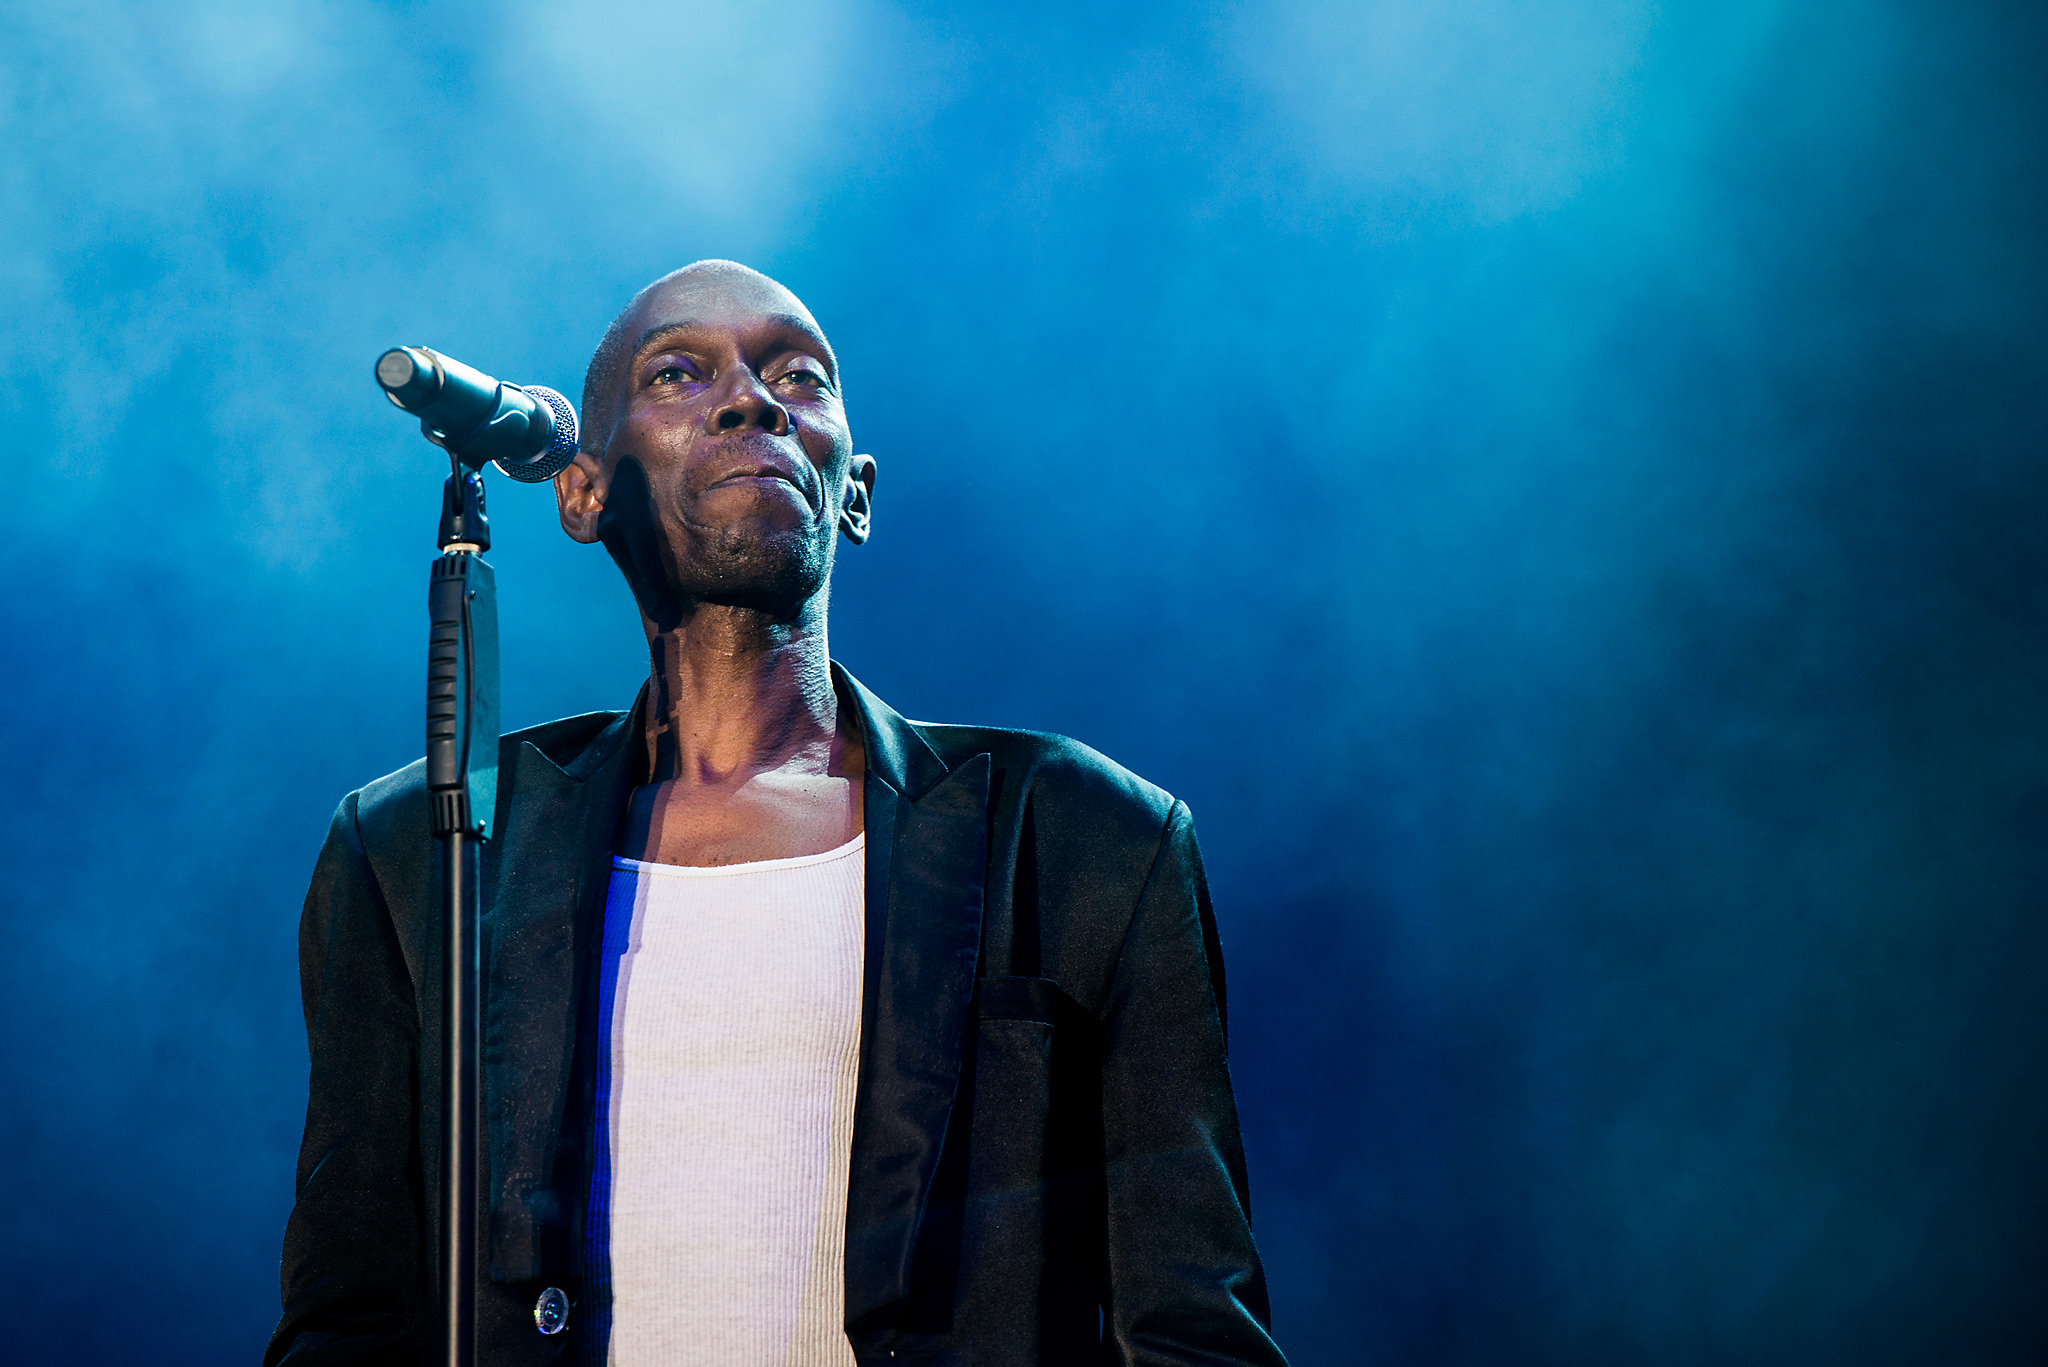 Faithless - South West 4